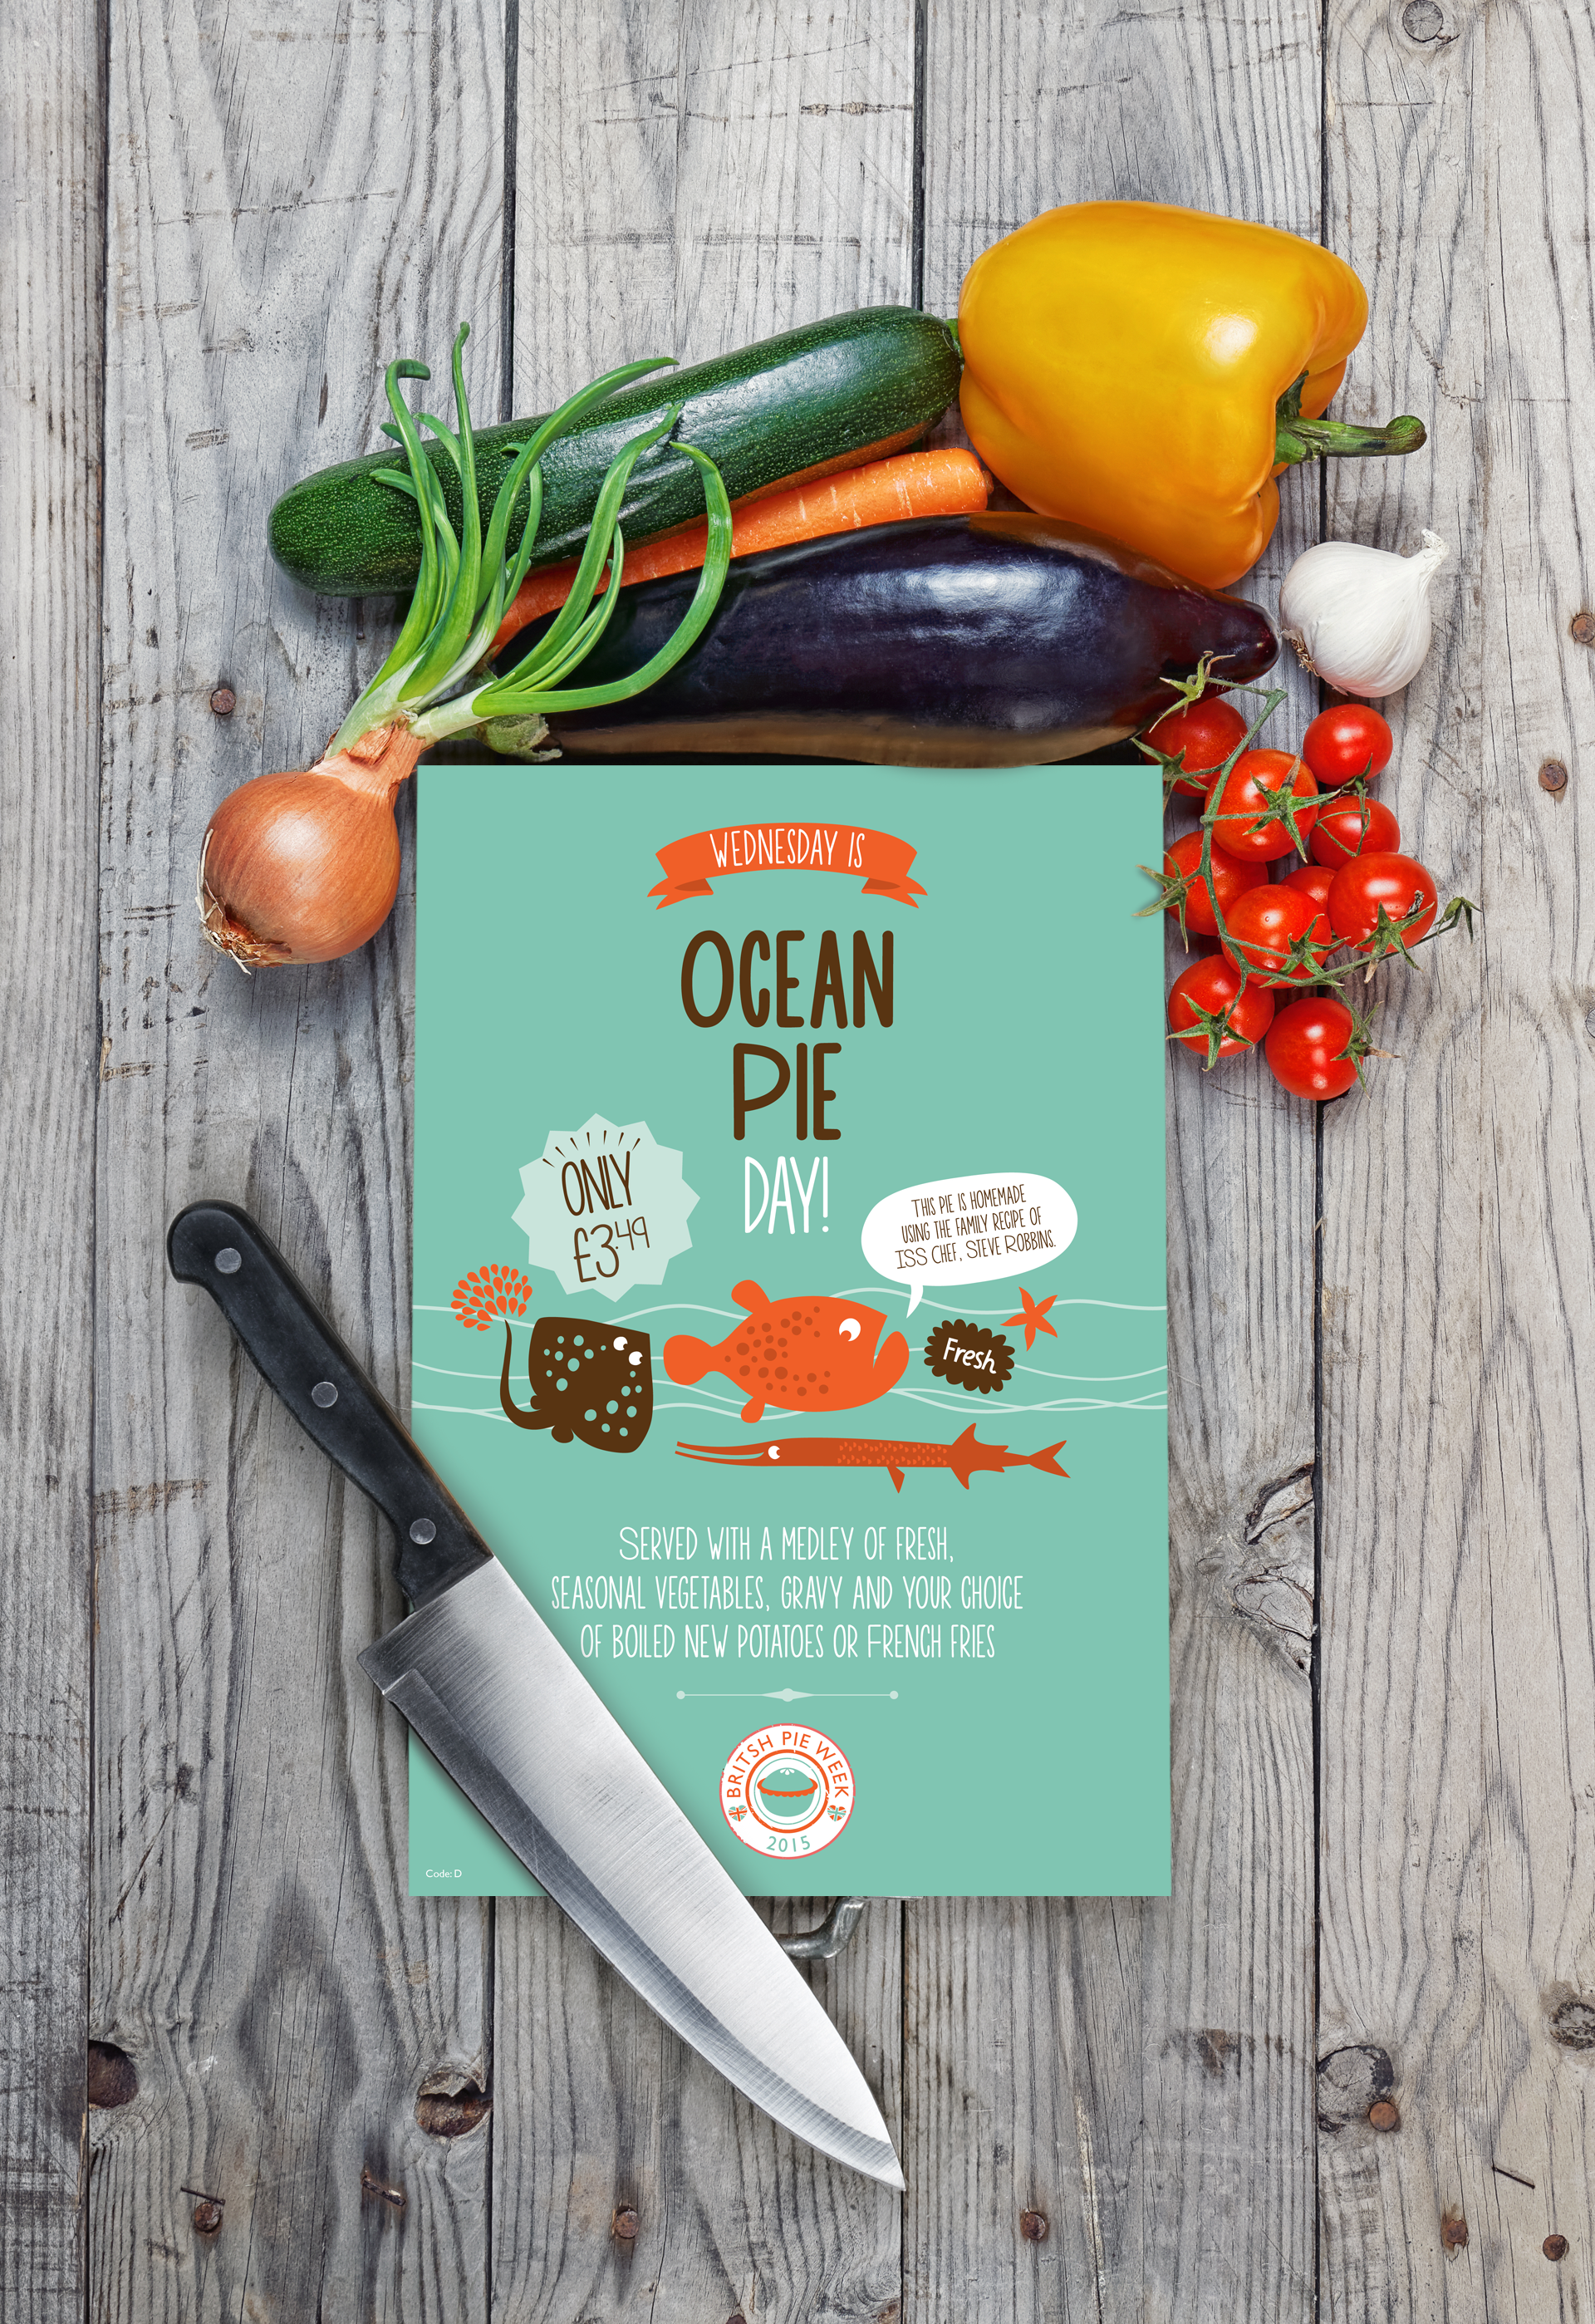 Ocean Pie Poster In Situ